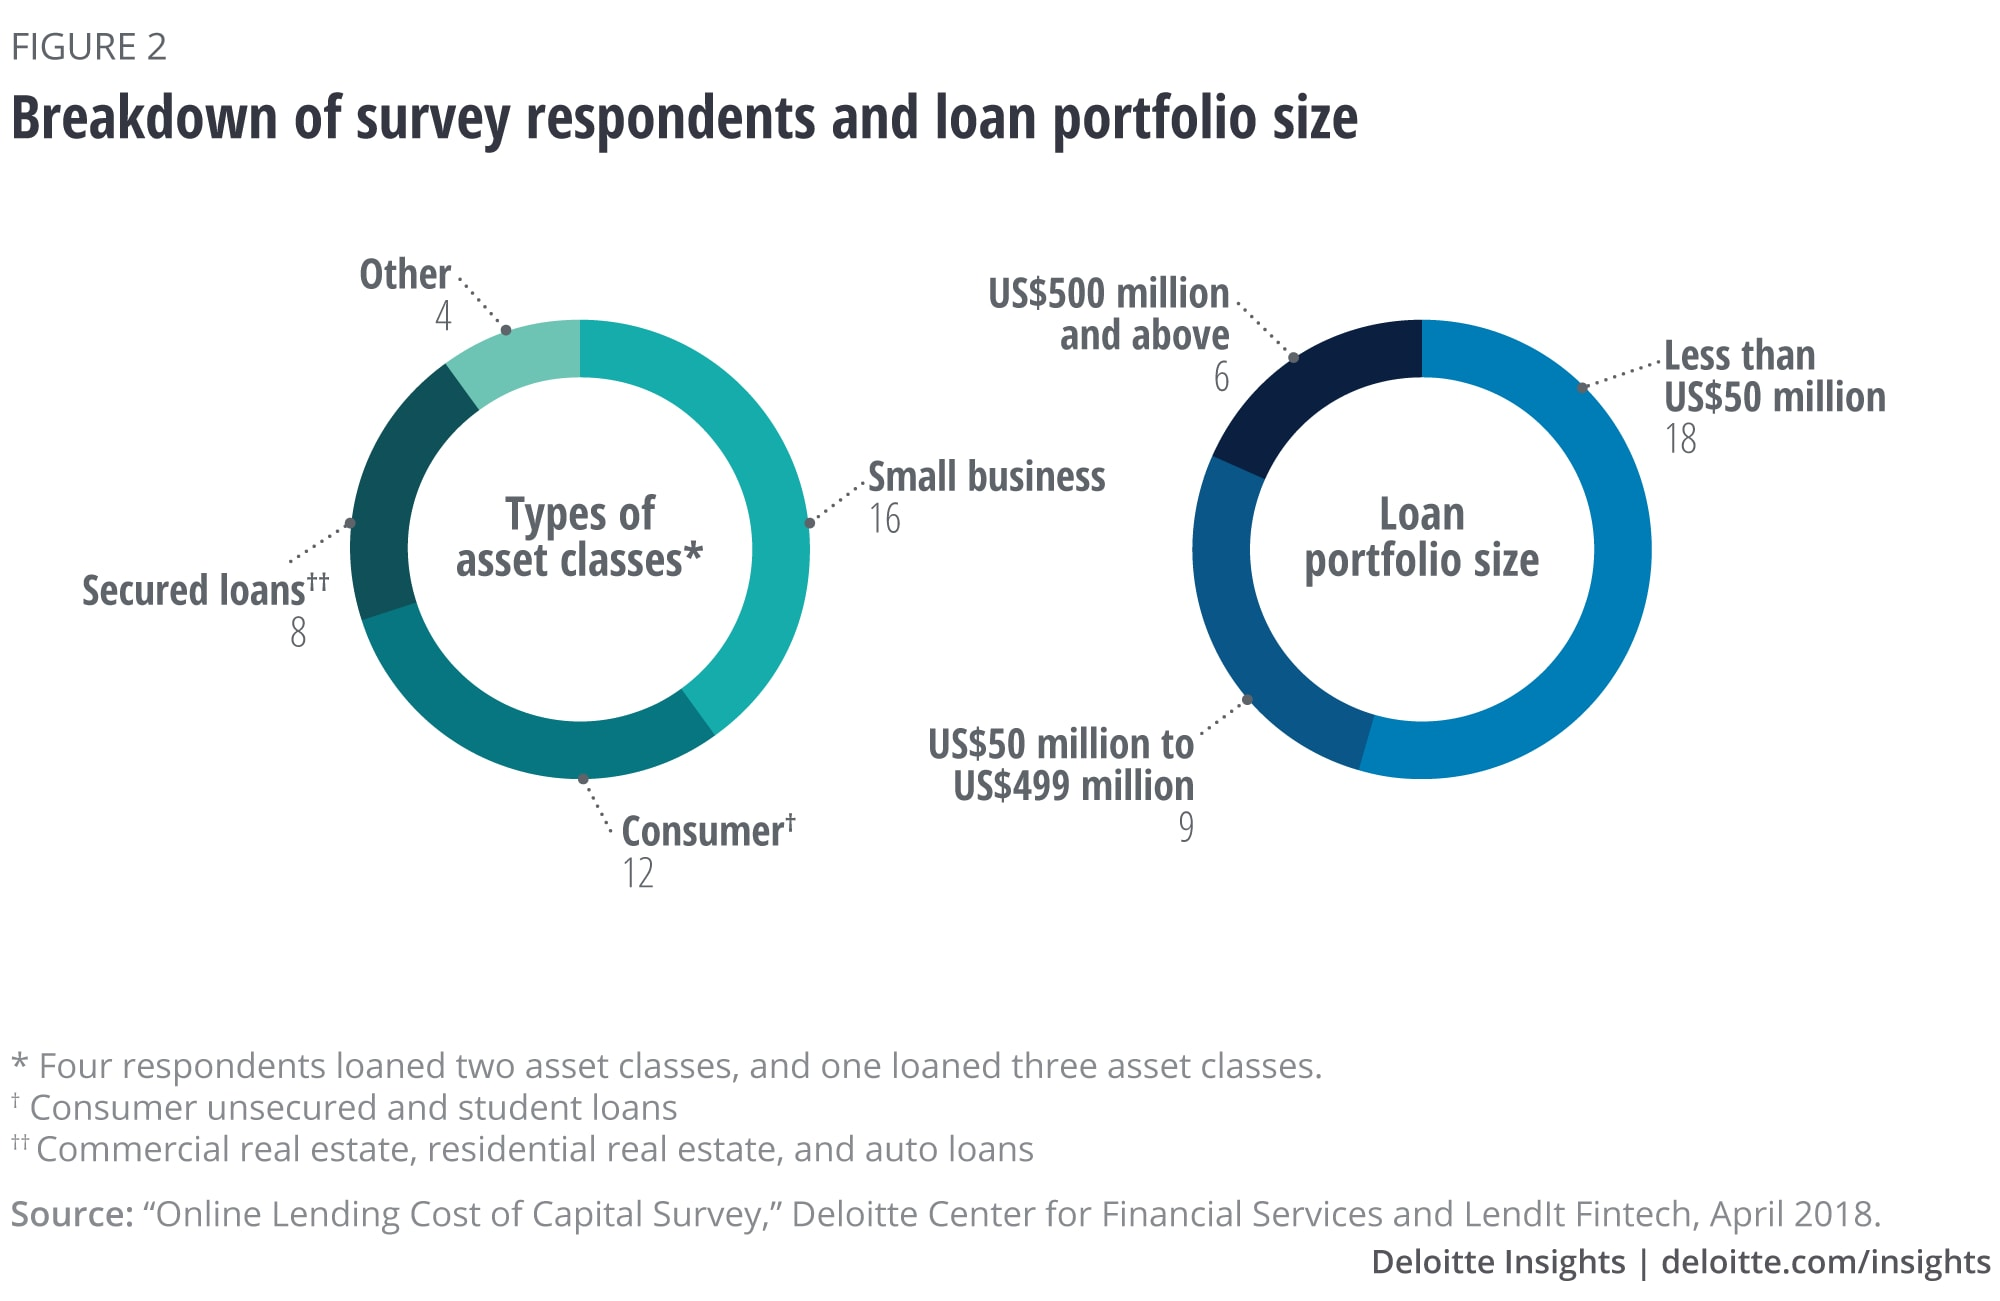 Breakdown of survey respondents and loan portfolio size